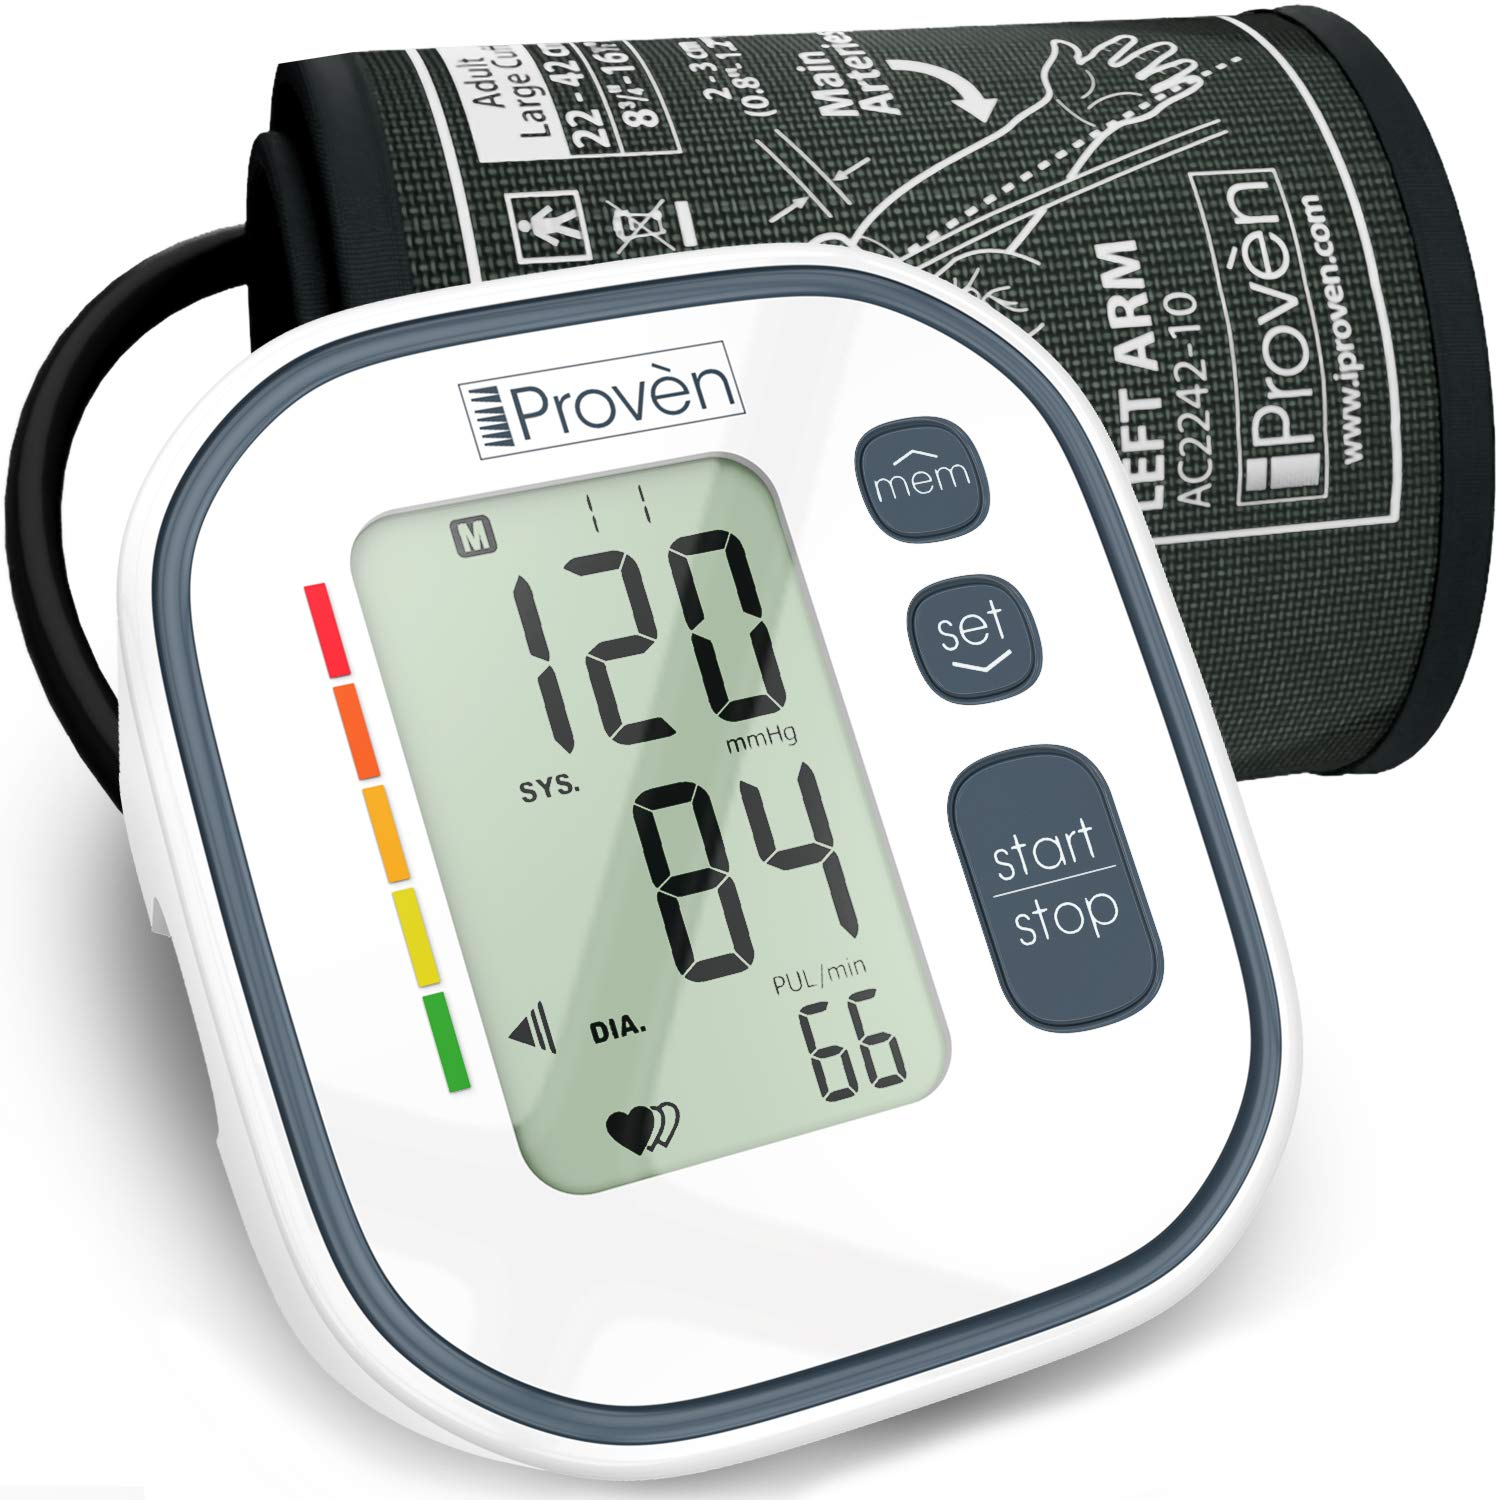 Blood Pressure Monitor Upper Arm BPM-634 - Automatic BP Machine - Top Rated FDA Approved Electronic BP Monitors - Arterial Home BP Cuff Machines - Tensiometro Digital (Gray)